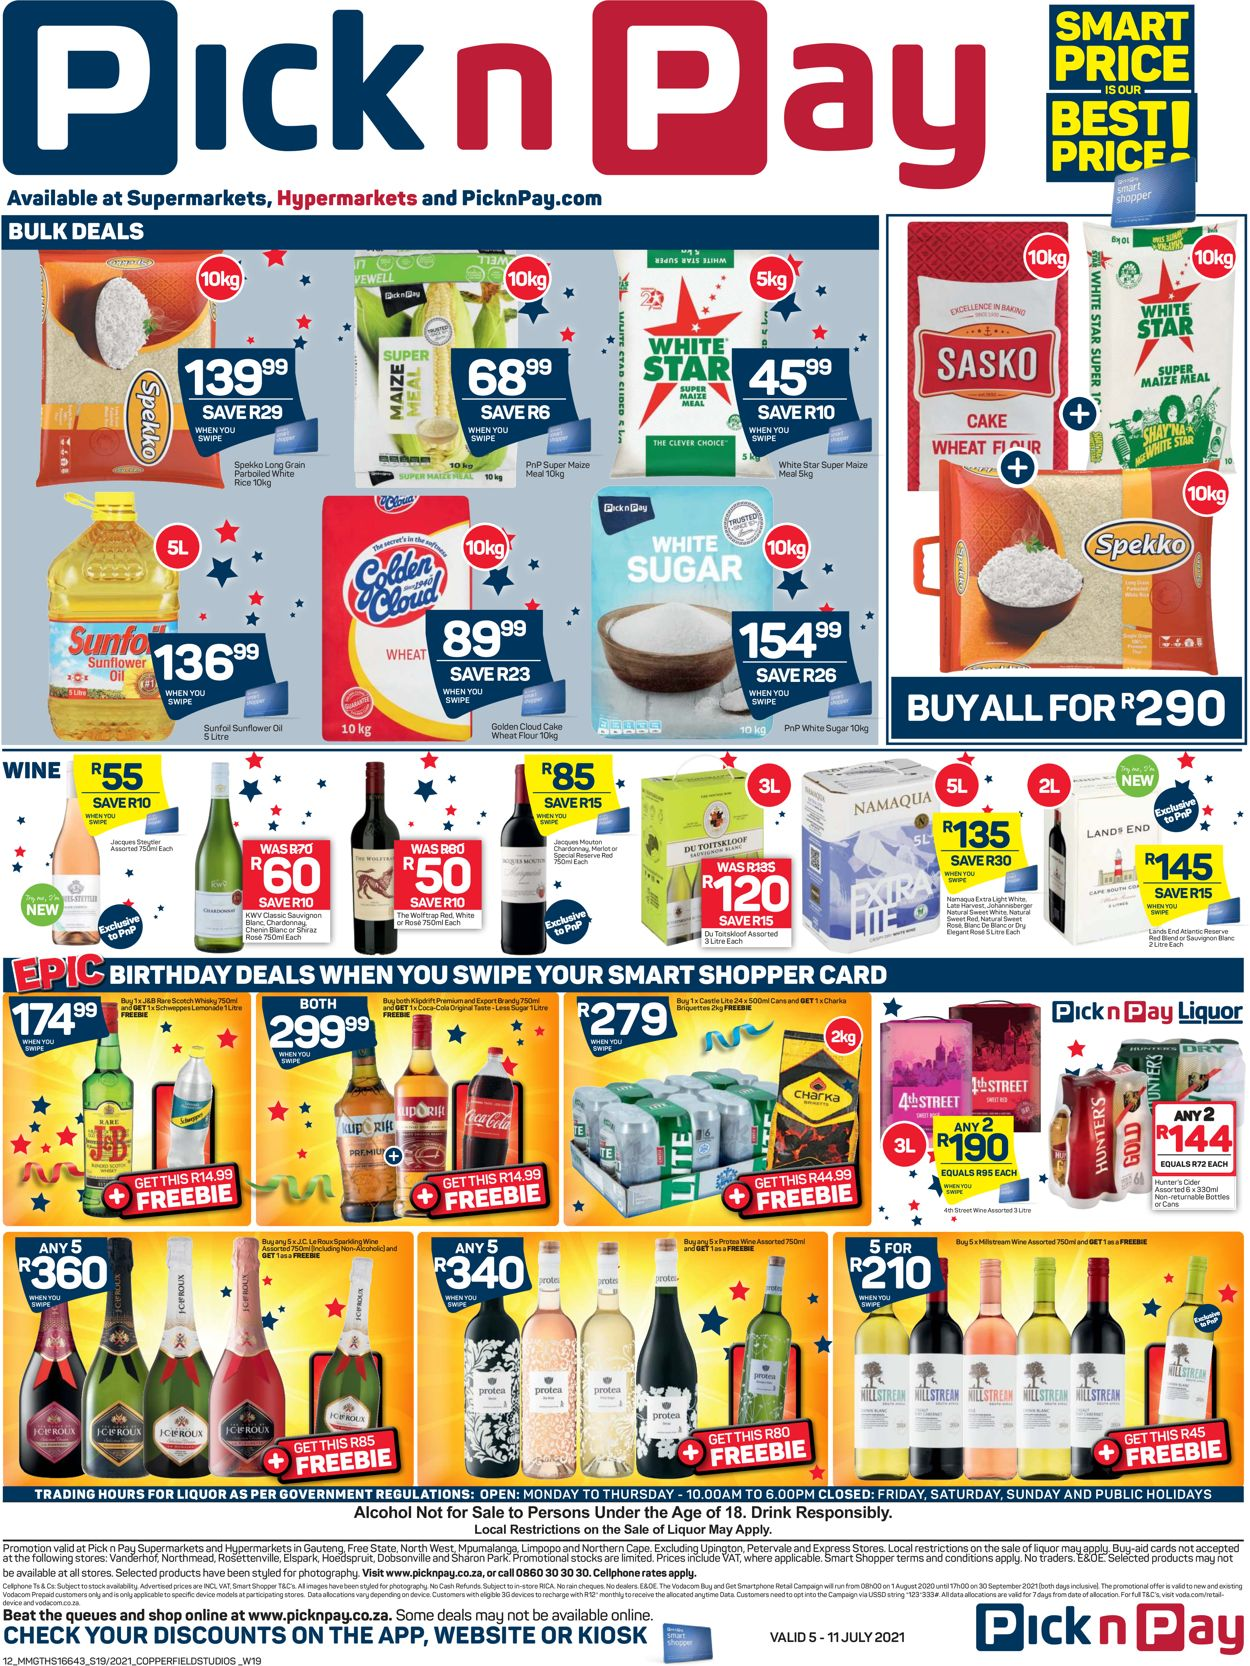 Pick n Pay Catalogue - 2021/07/05-2021/07/17 (Page 12)